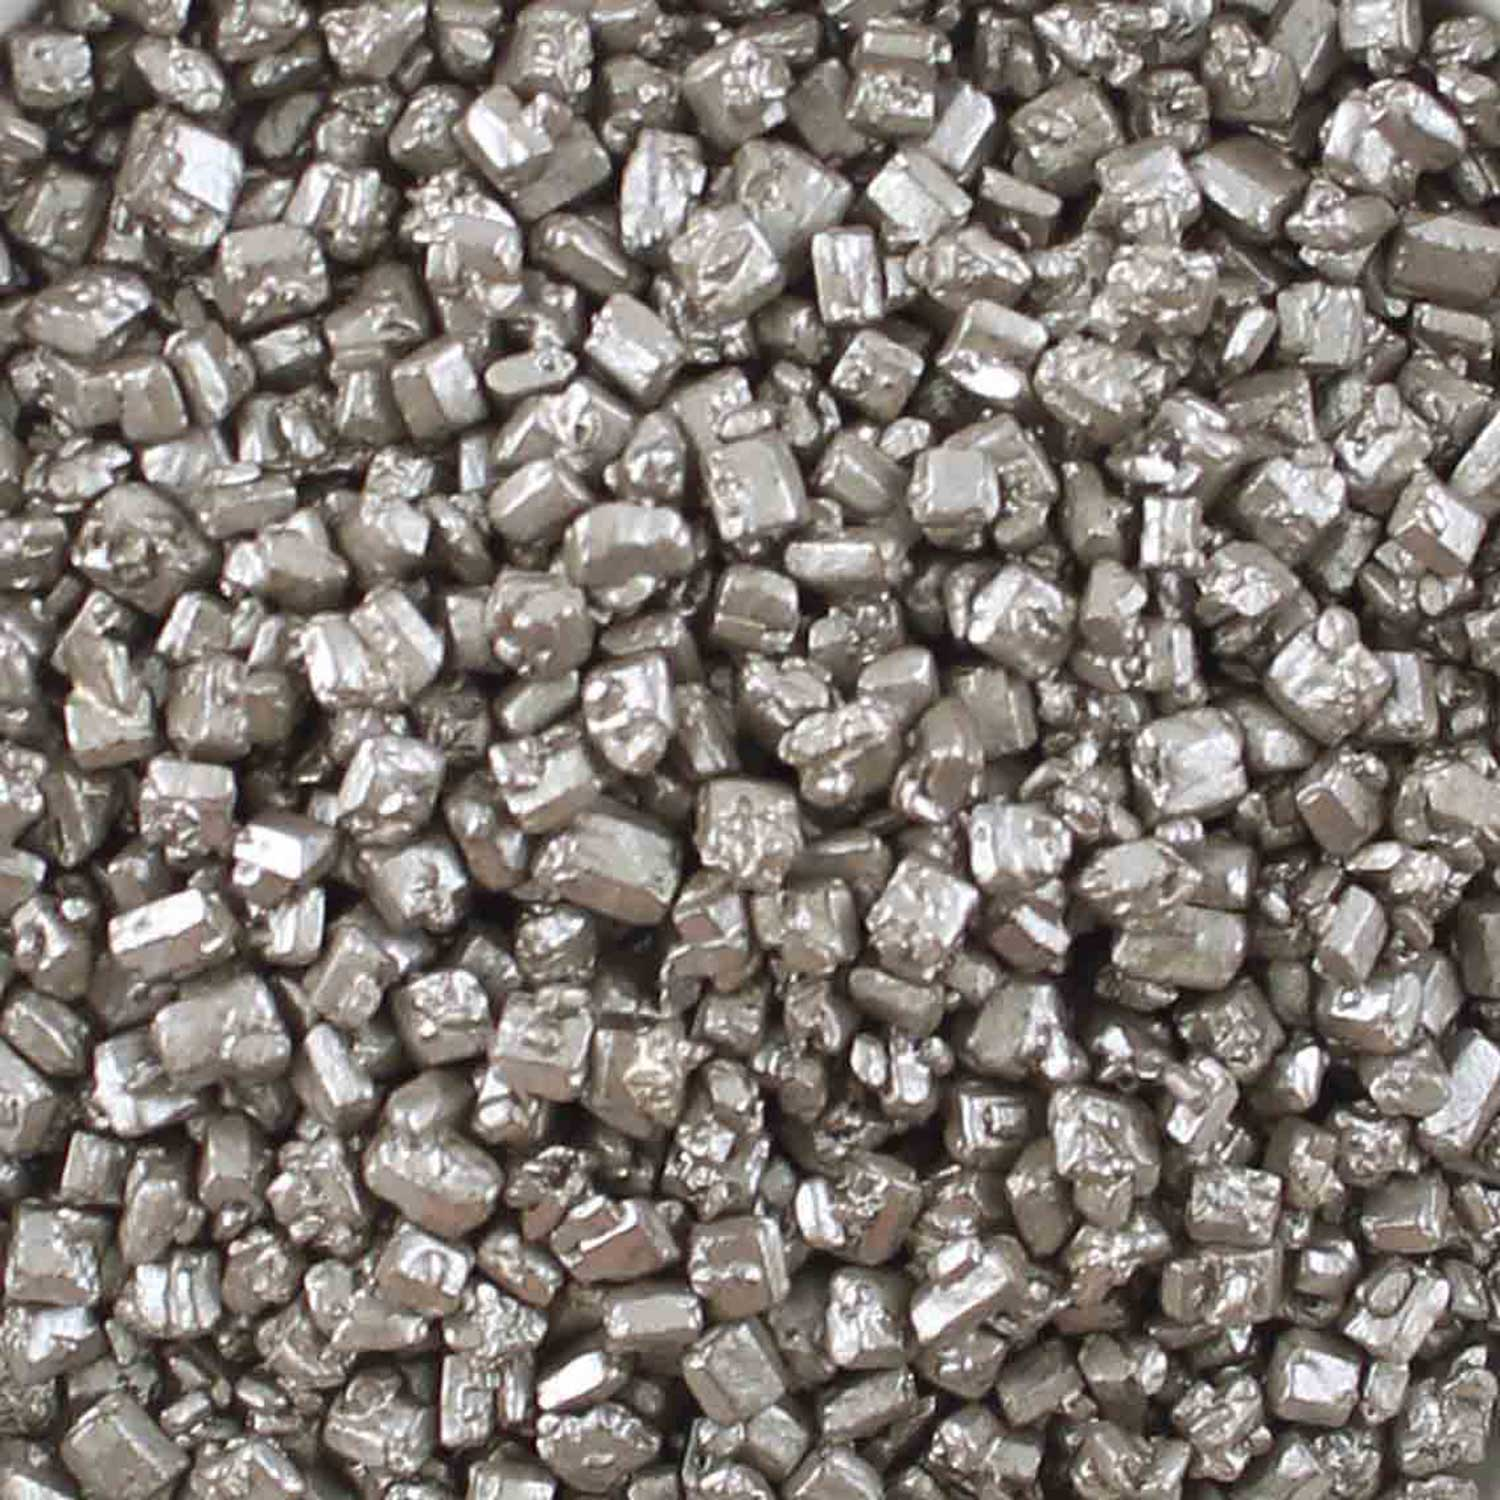 Metallic Silver Rock Sugar